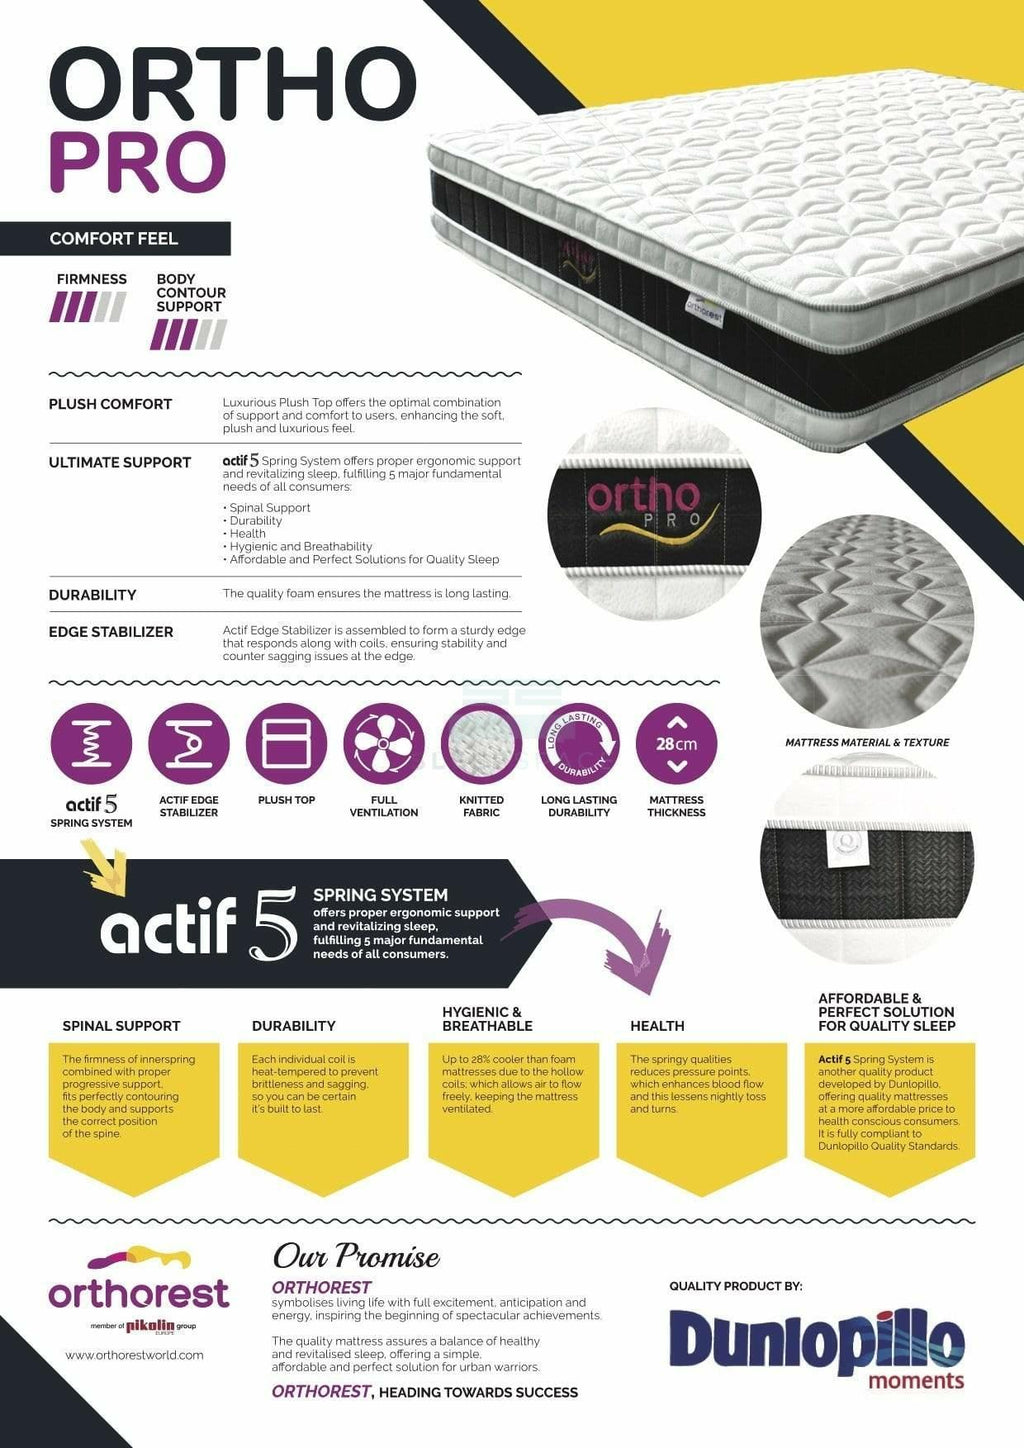 Orthorest Ortho Pro Mattress-Orthorest-Sleep Space